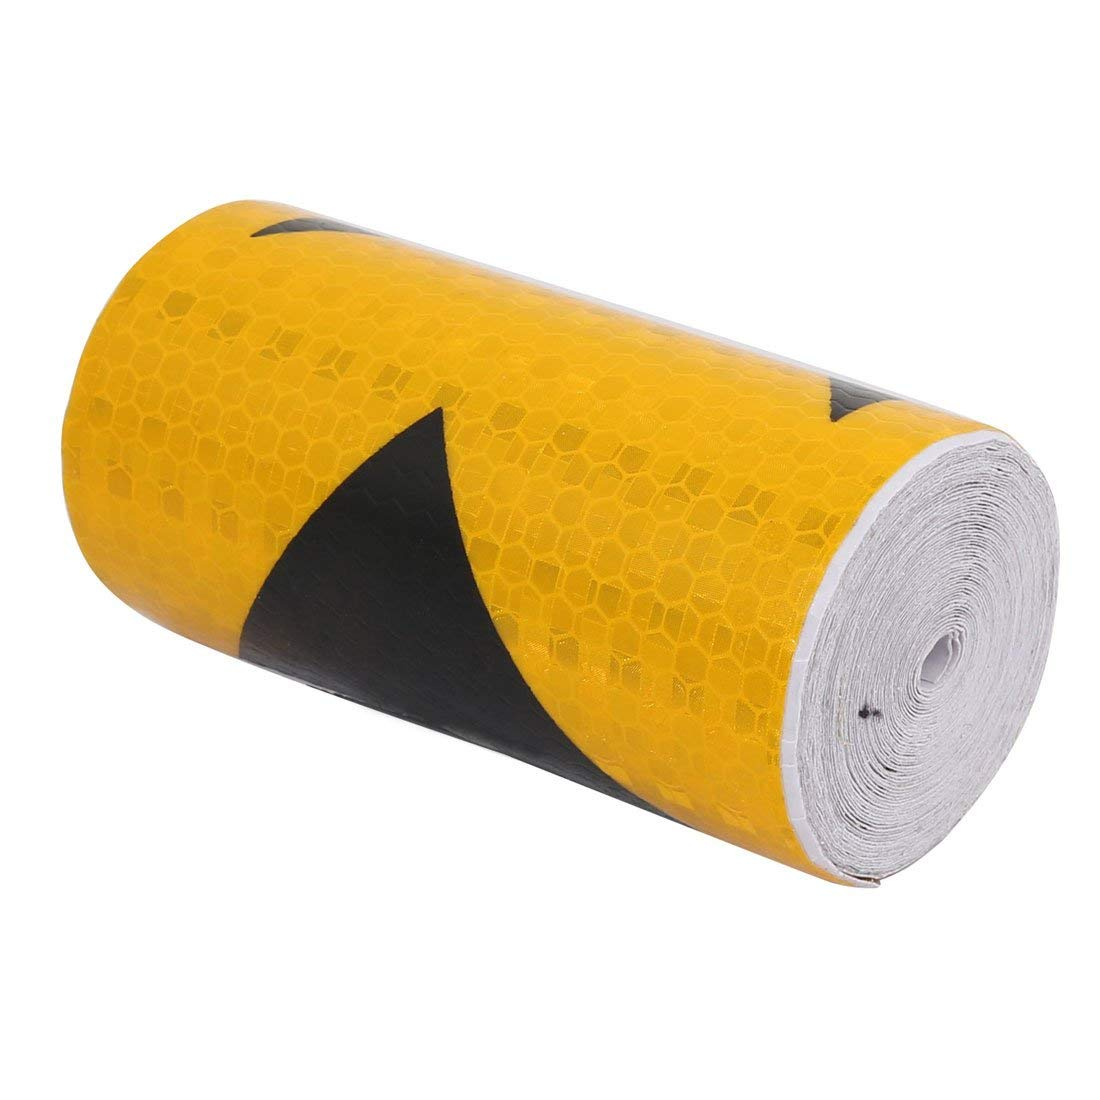 Honeycomb Reflective Warning Tape Yellow Black 10cm Width 6m Length Miki&Co